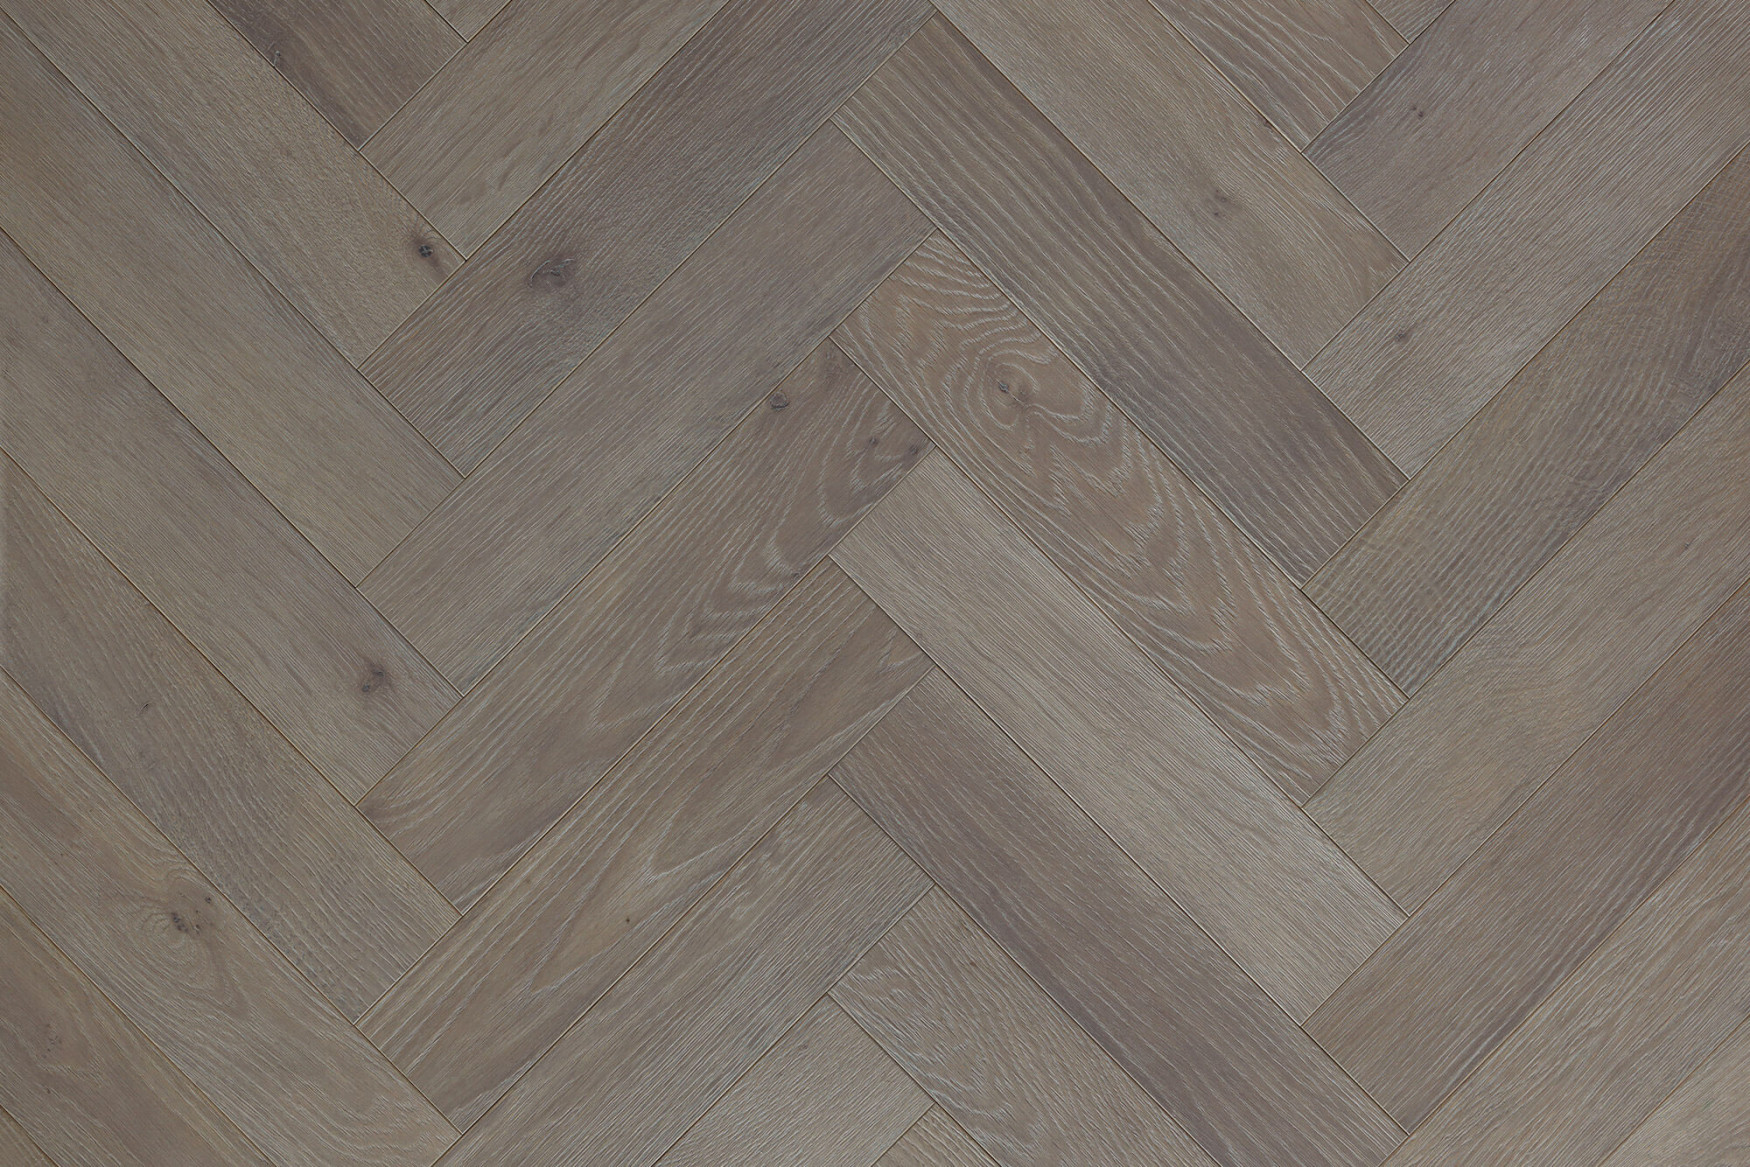 Element7-Parquet-SachsGreyHerringbone_